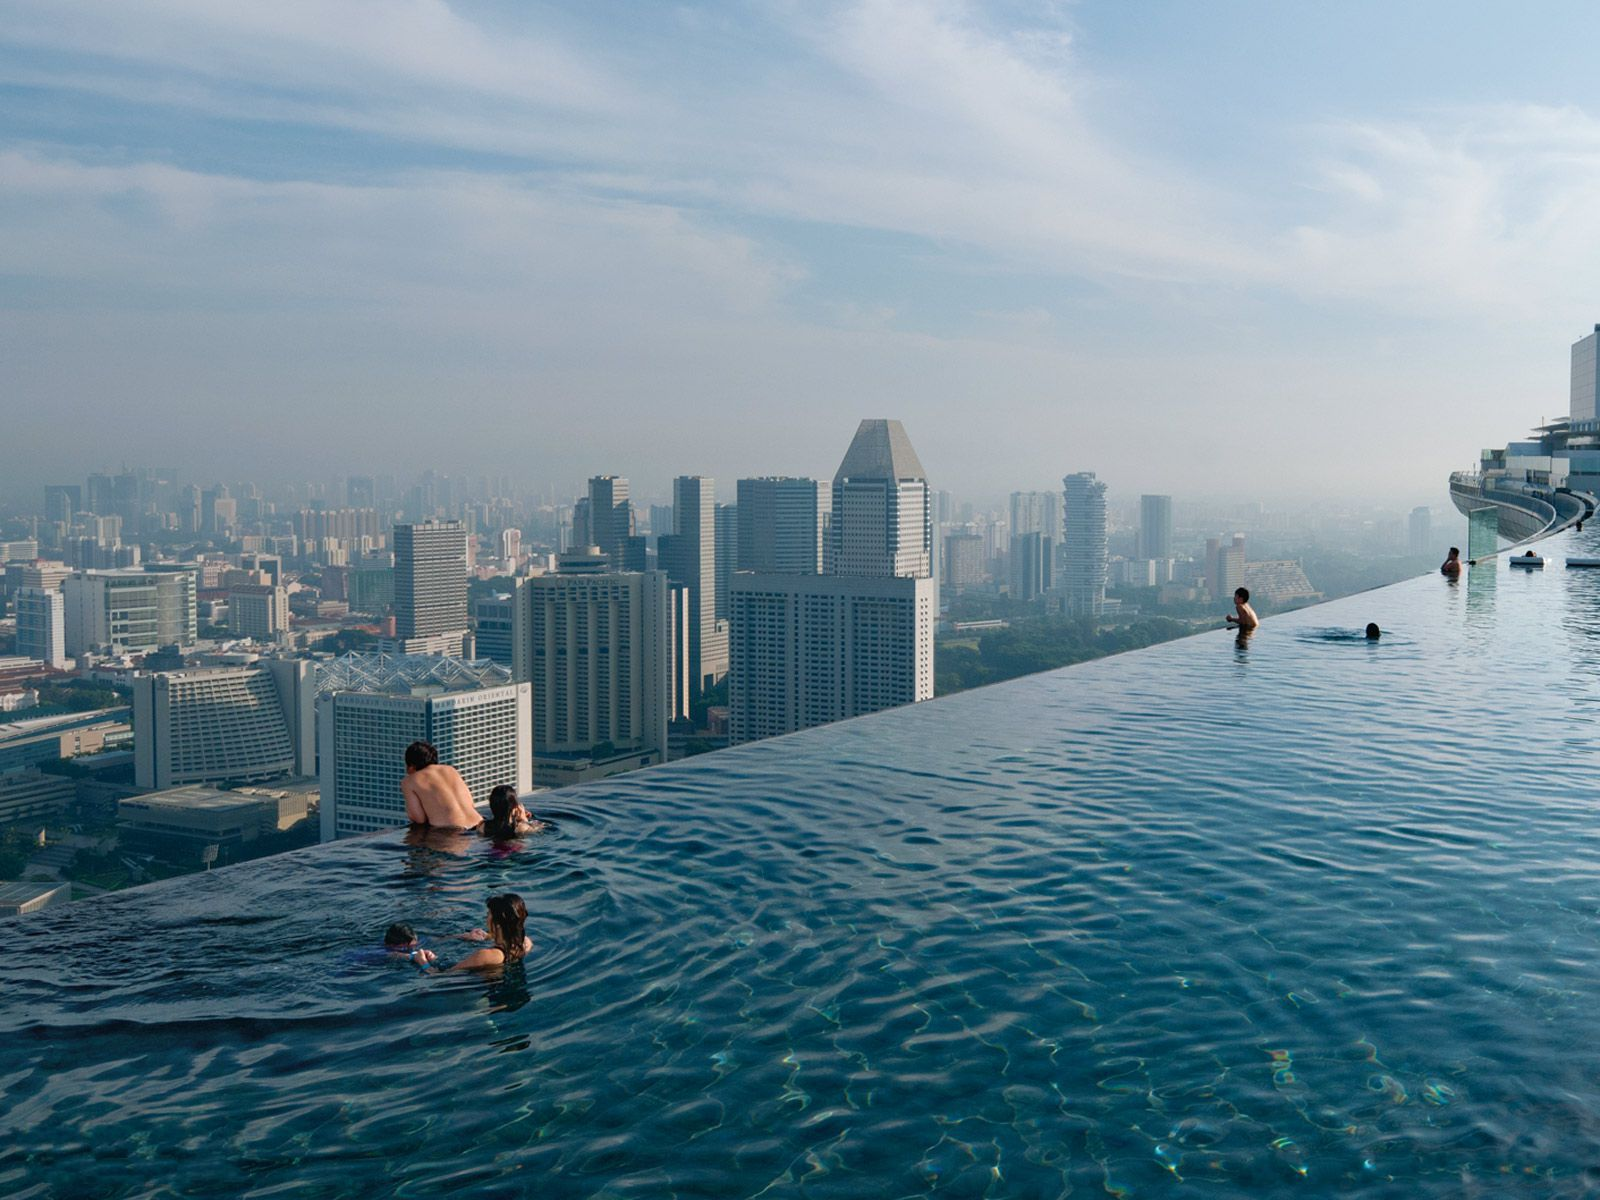 This Hotel Is More Than Hype In A Room With Breakfast From EUR 370 Per Night Marina Bay Sands Review